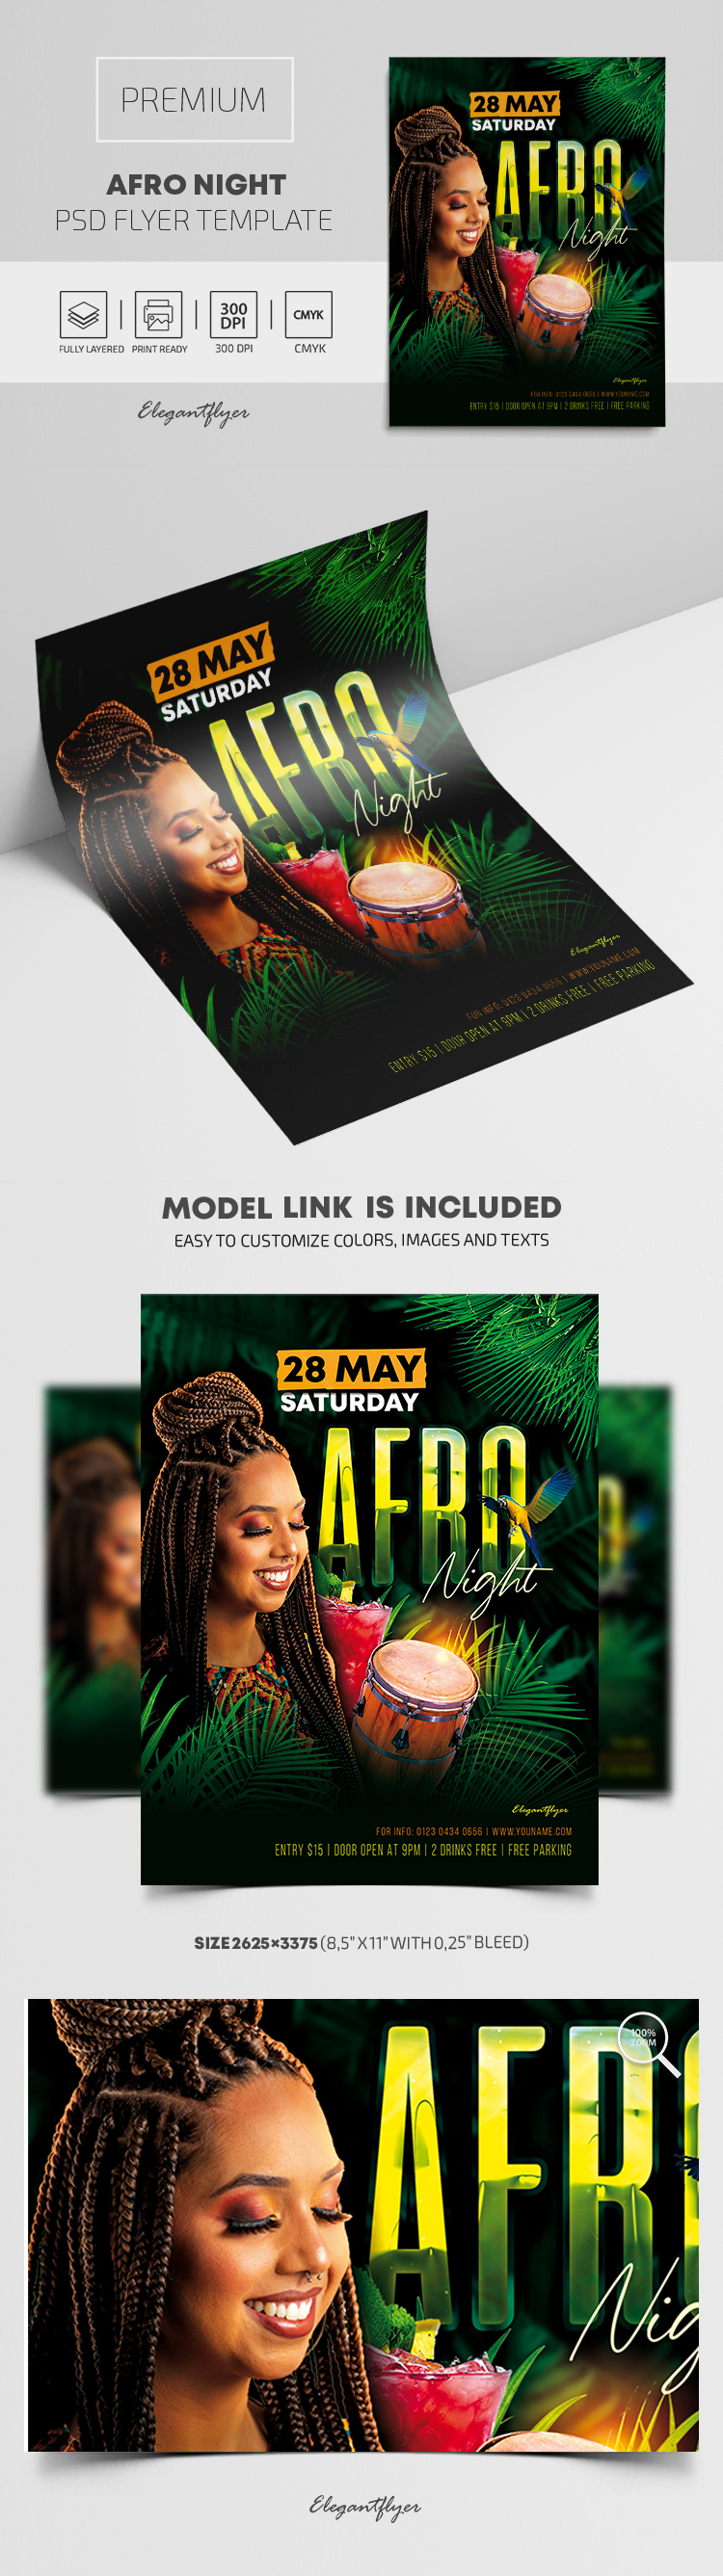 Afro Night – Premium PSD Flyer Template